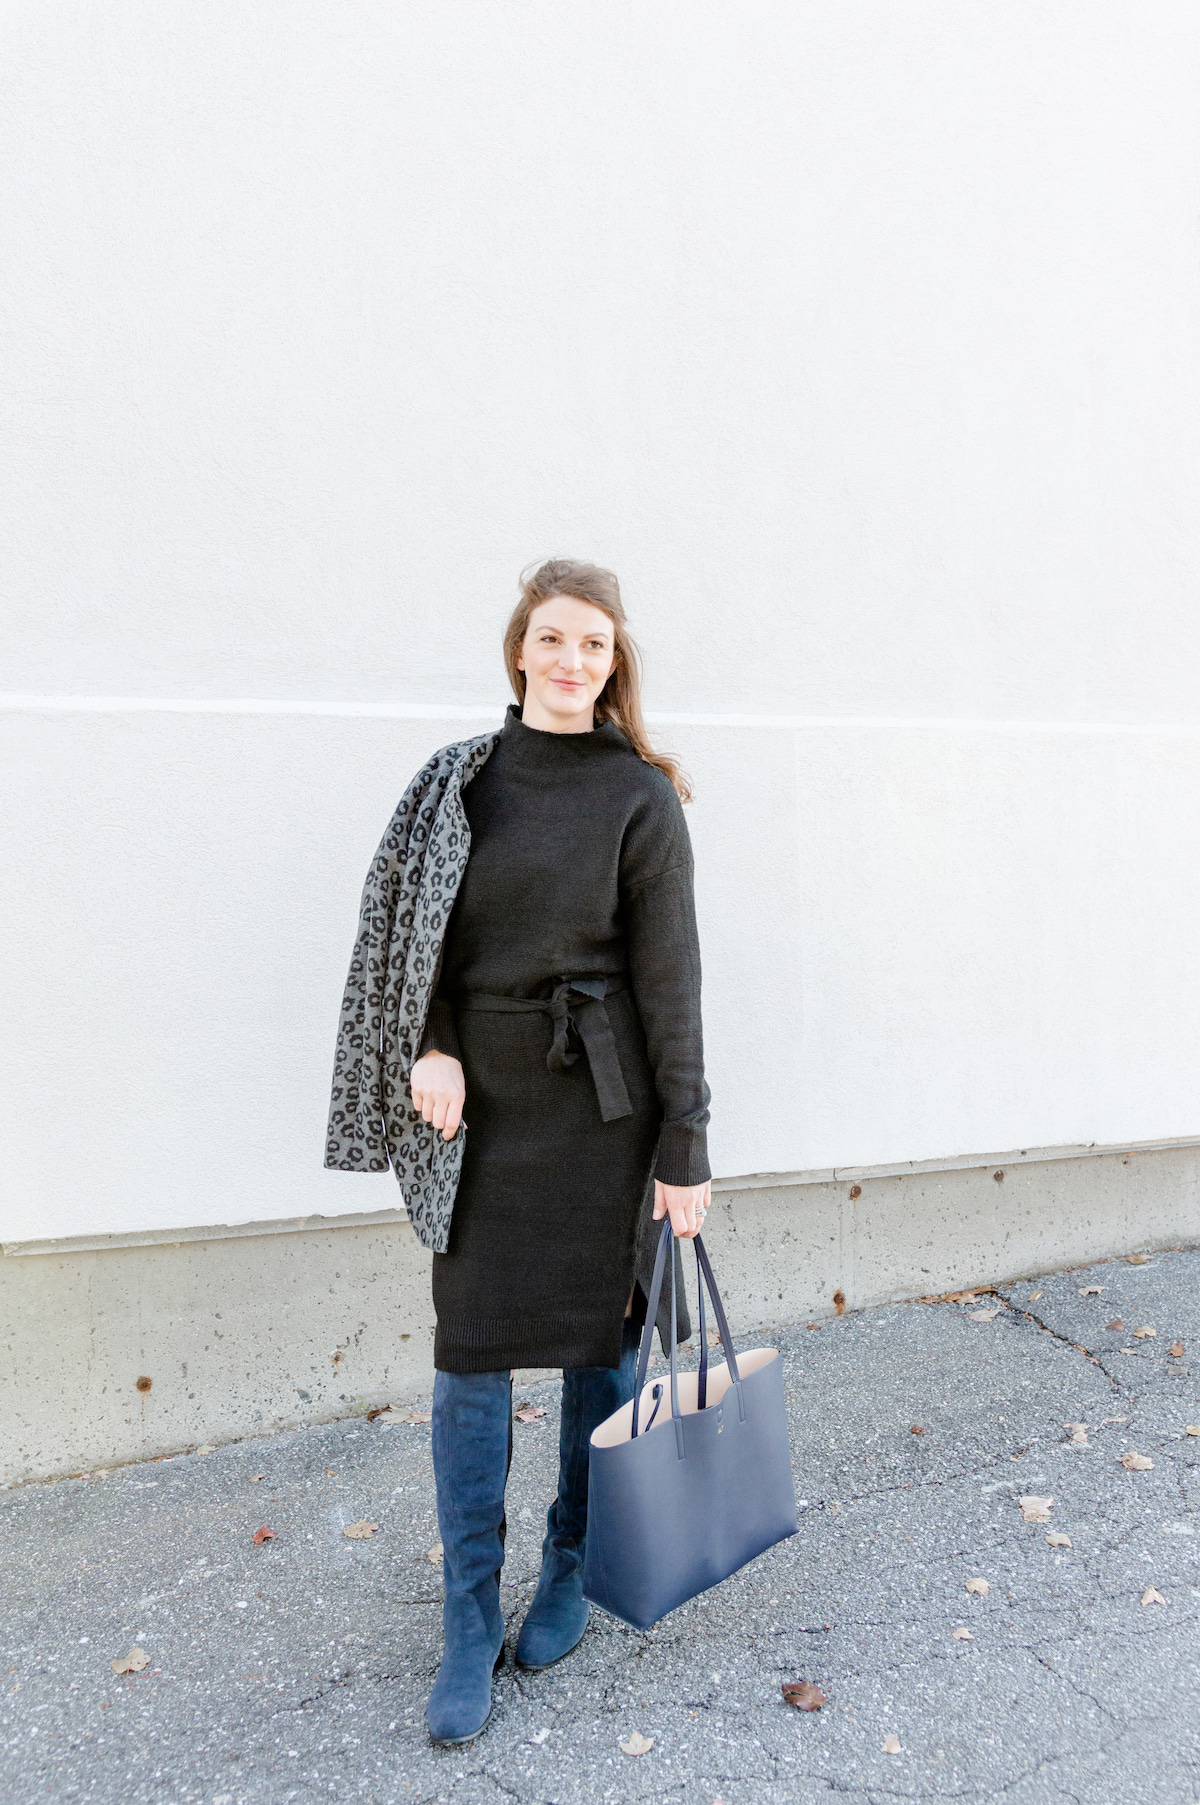 How to wear a black sweater dress with OTK boots - comfy and classic for a holiday get-together